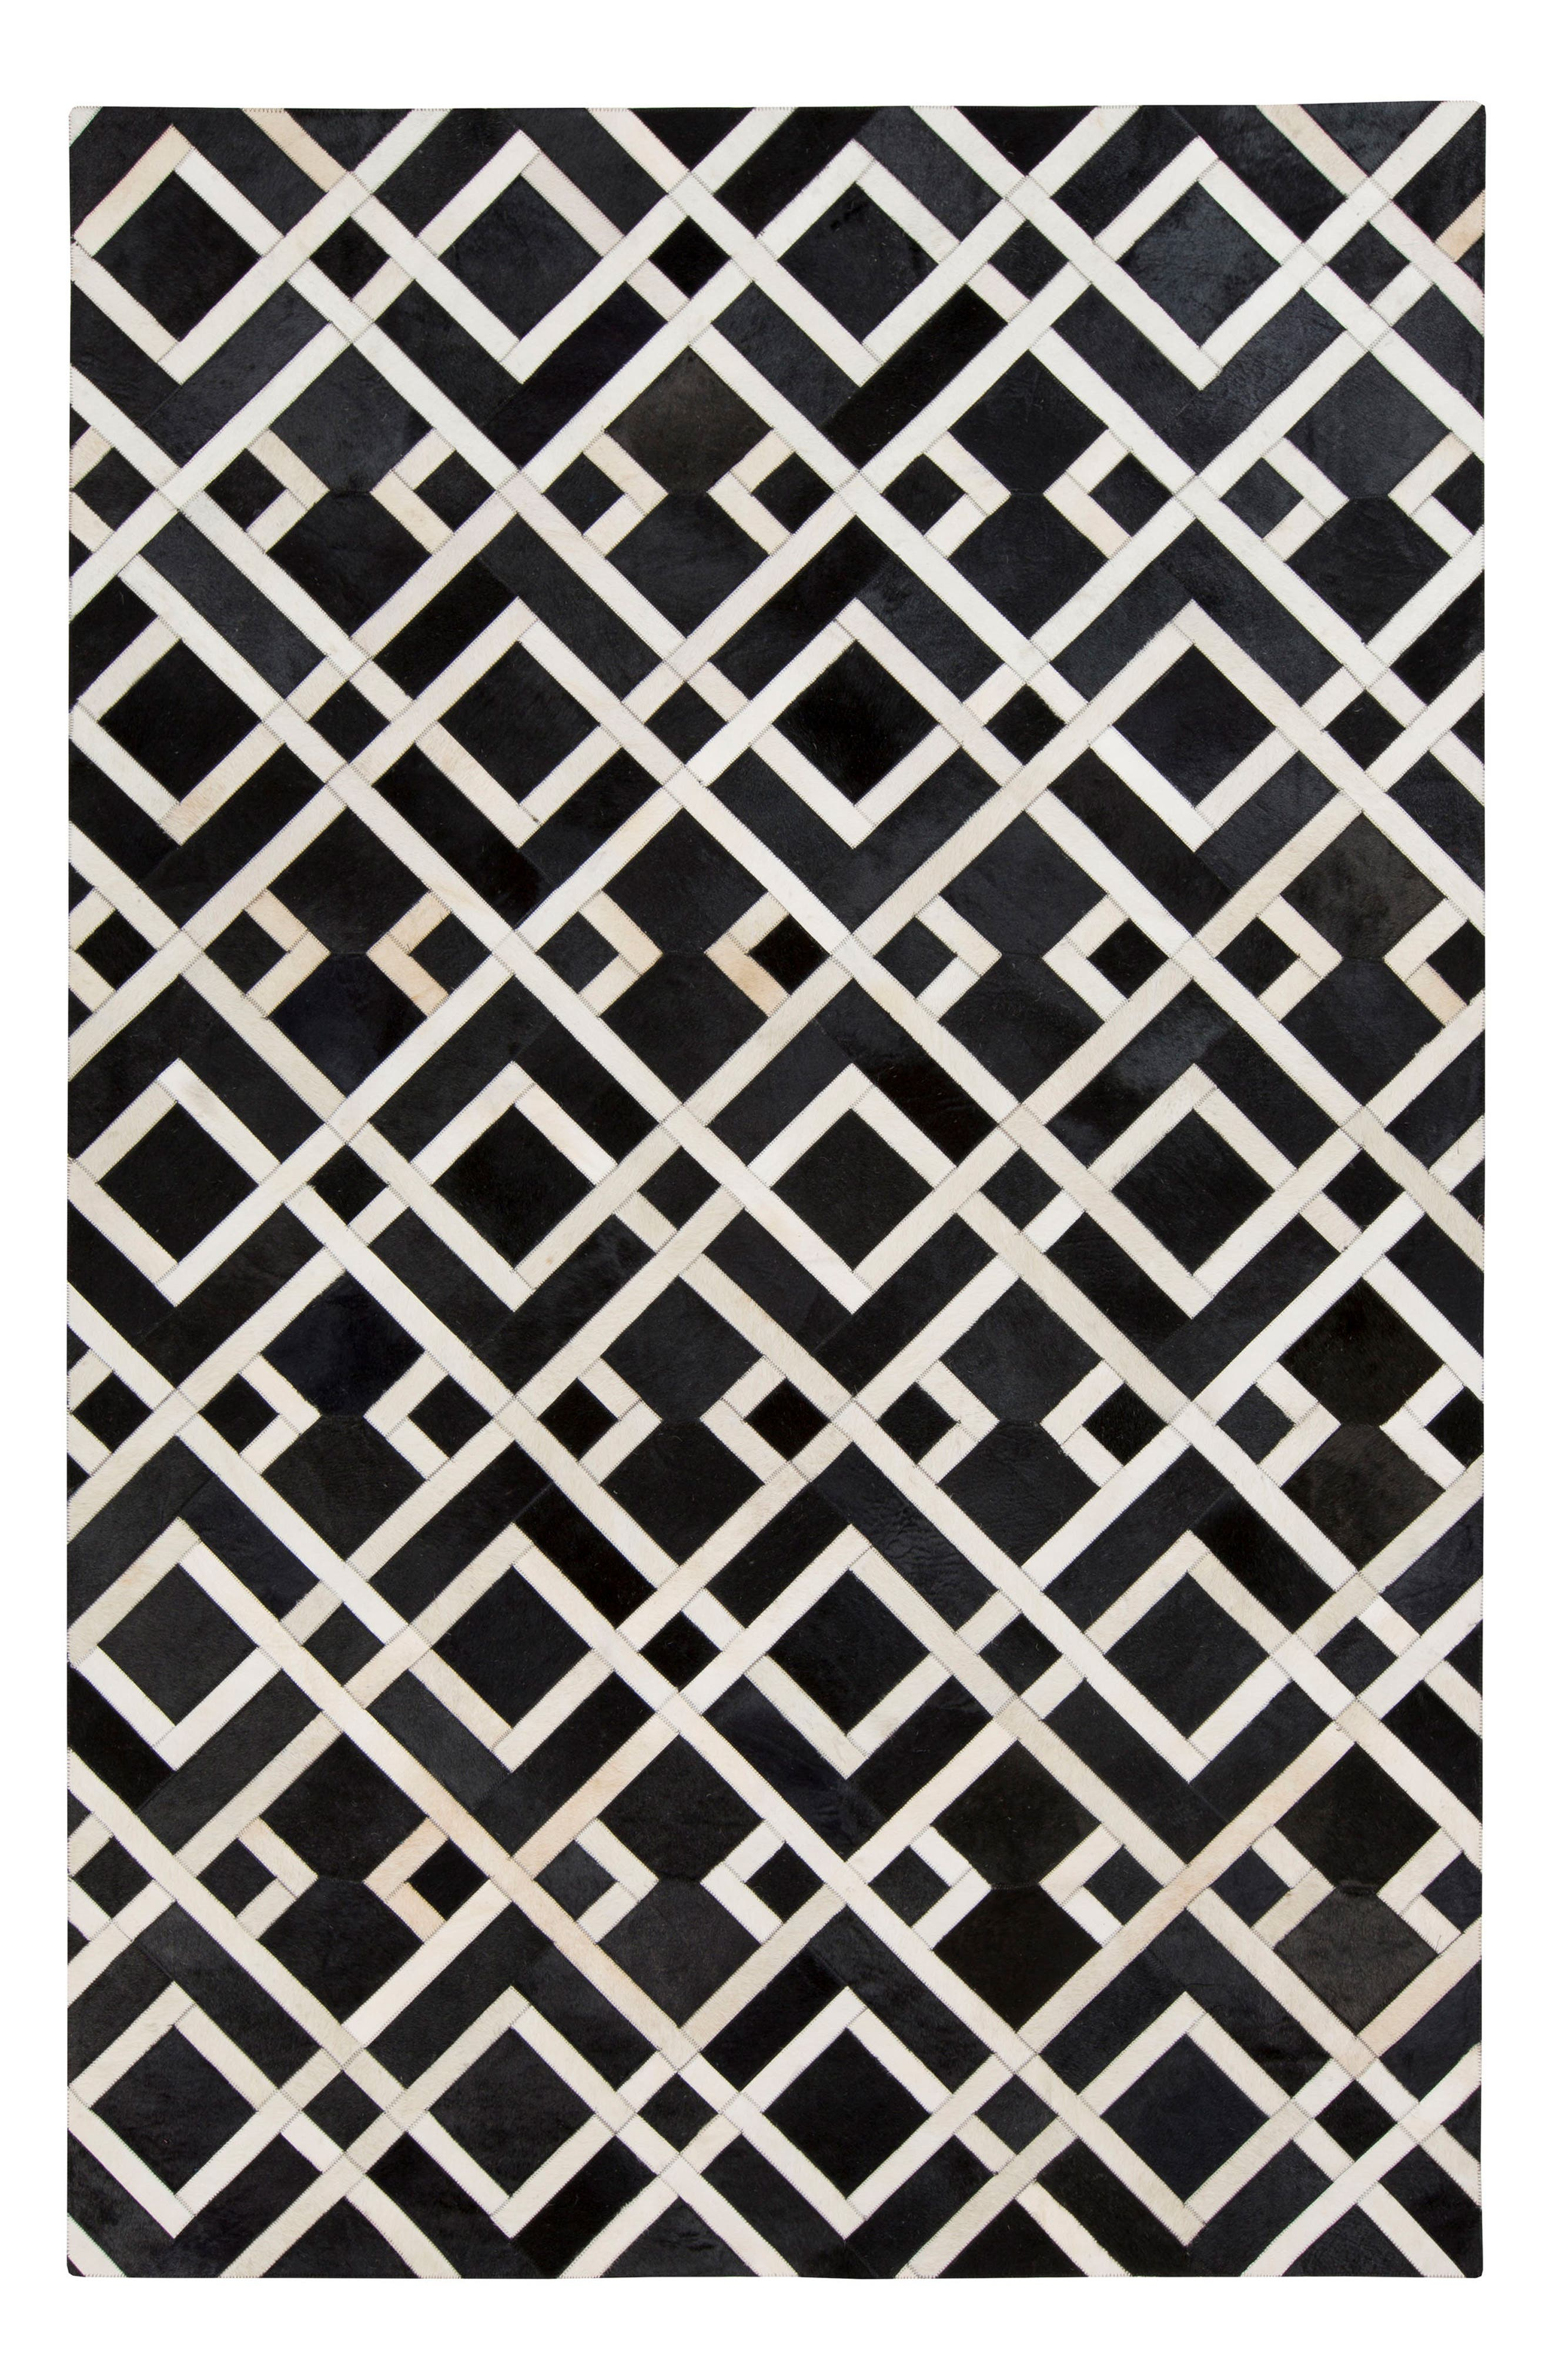 Trail Gate Hand Stitched Calf Hair Rug,                         Main,                         color, 001